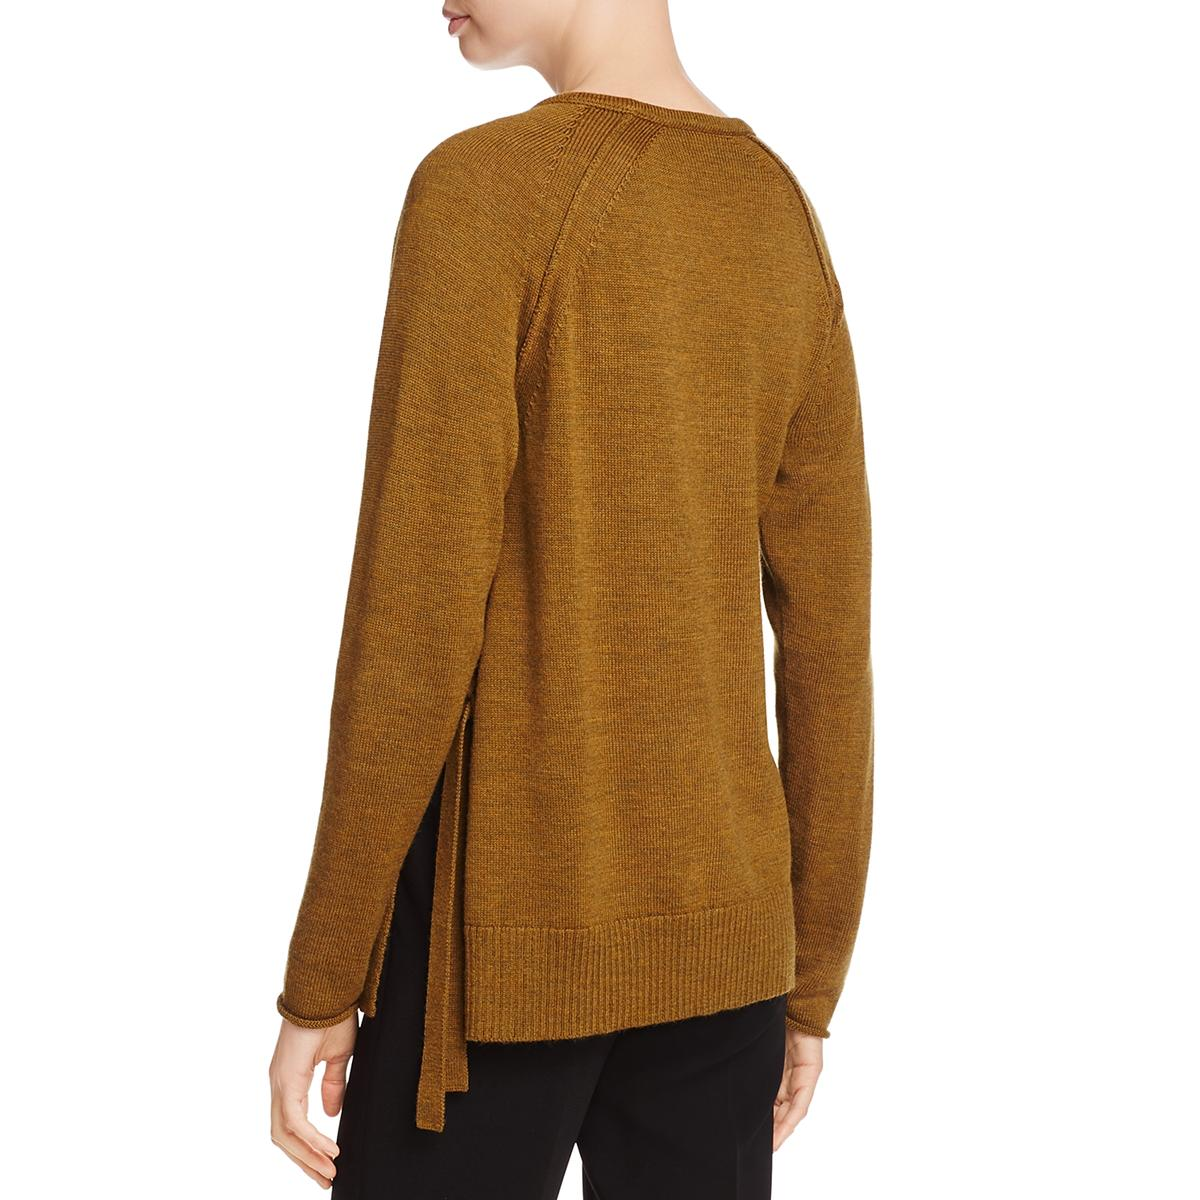 49fe76f3eb6 Eileen Fisher Womens Merino Wool Long Sleeves Pullover Sweater Top ...